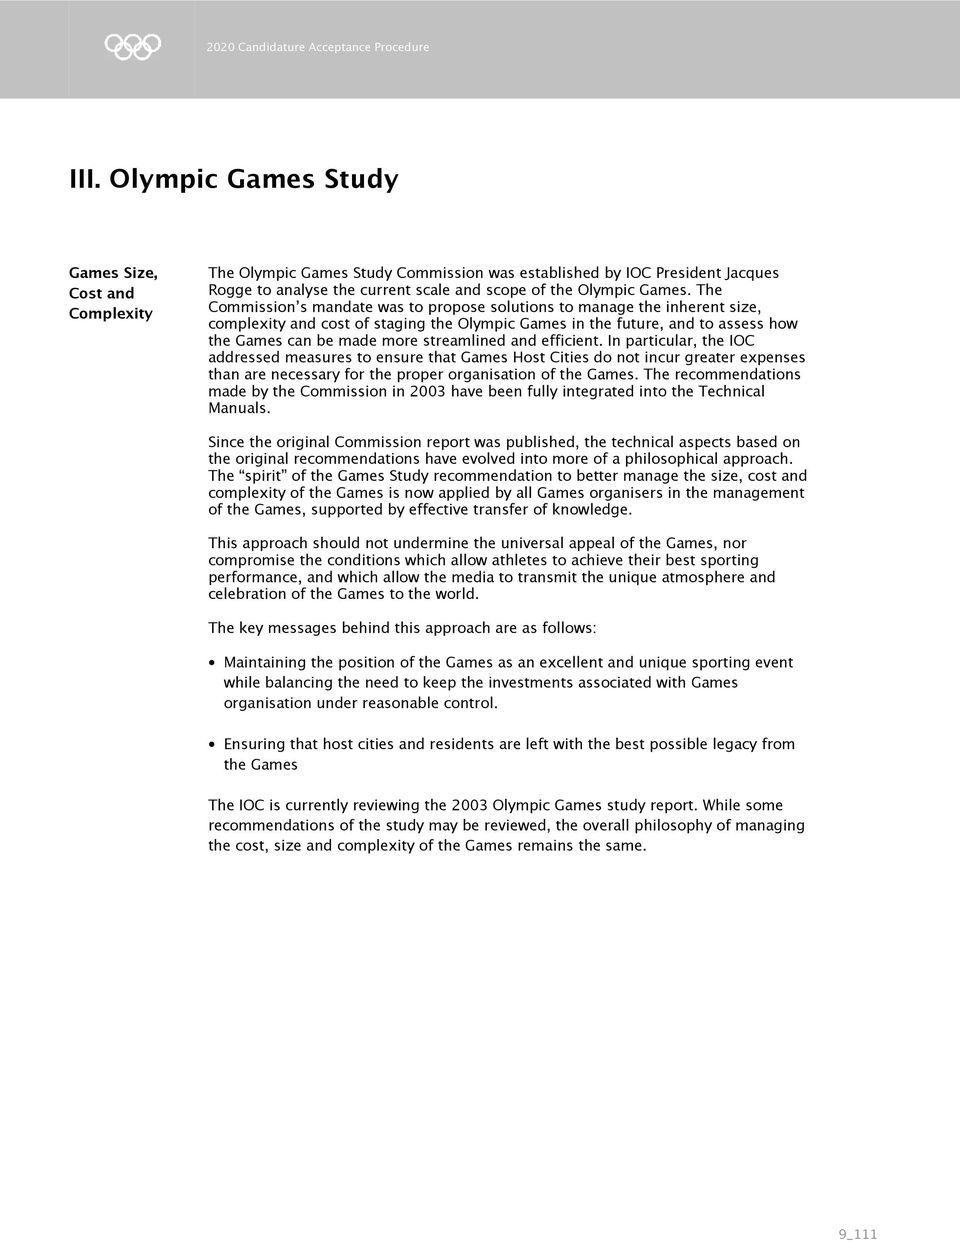 and efficient. In particular, the IOC addressed measures to ensure that Games Host Cities do not incur greater expenses than are necessary for the proper organisation of the Games.